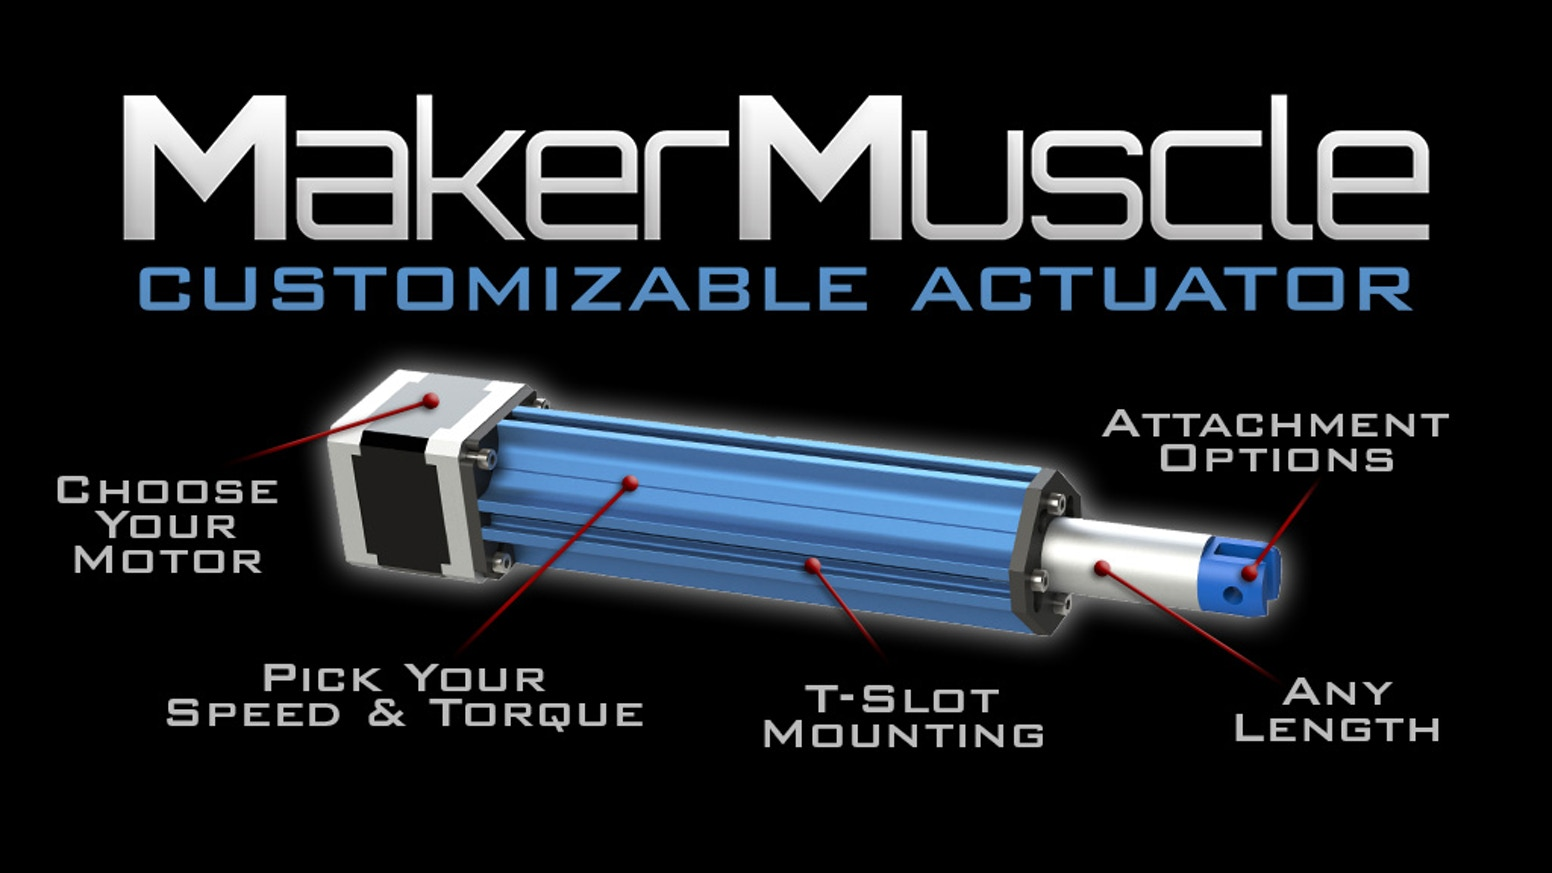 The first fully customizable & low cost actuator system for Makers! Let's make robotics better and more affordable!